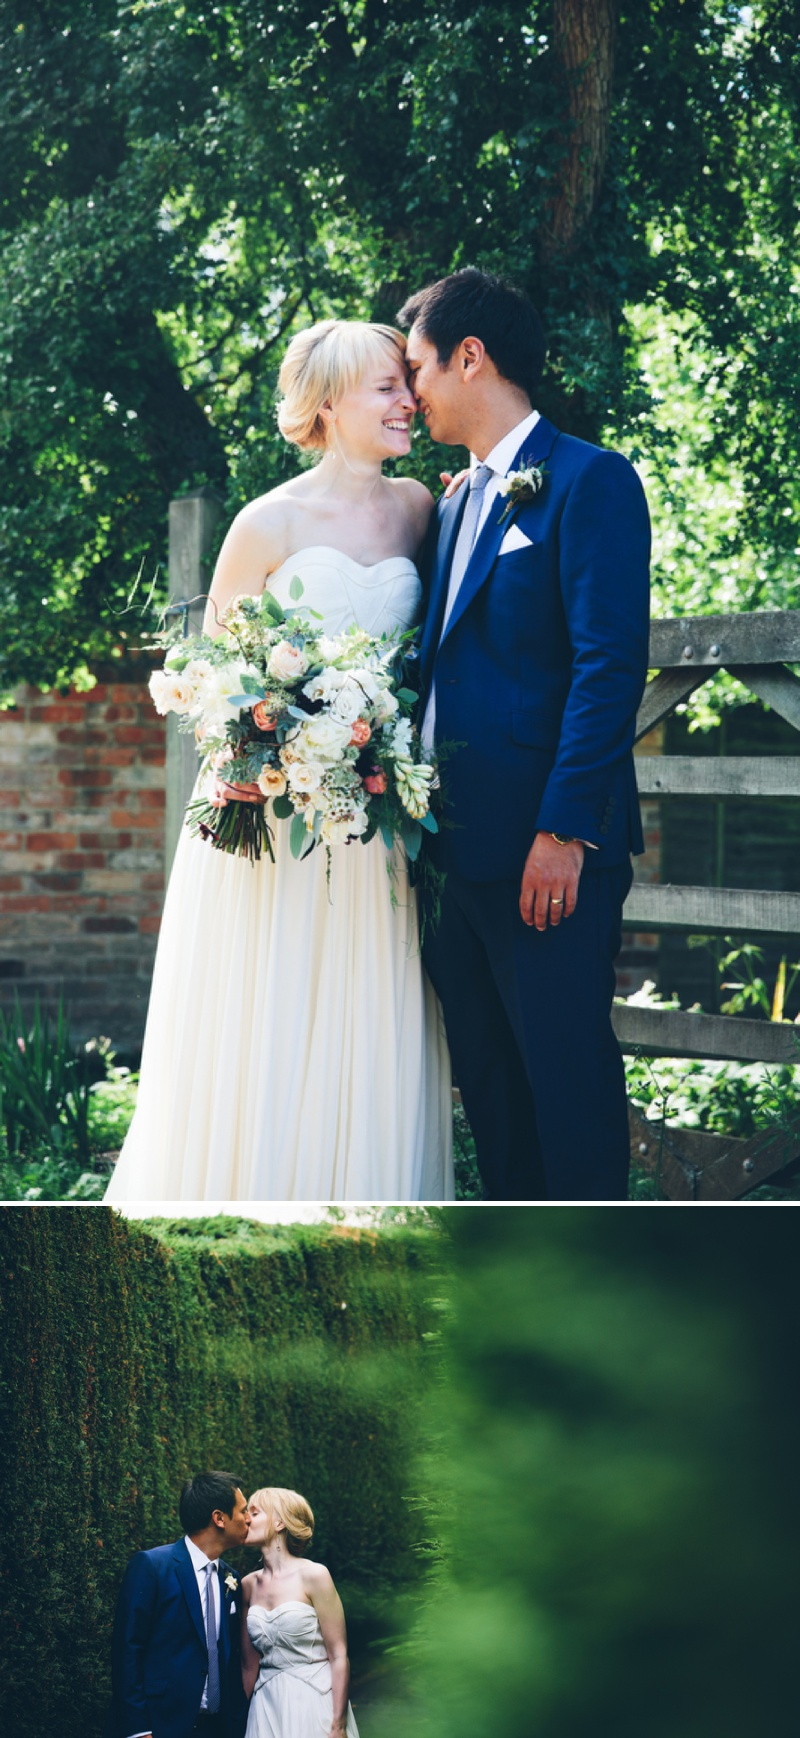 Beautifully Styled Elegant Yet Relaxed Marquee Wedding In Nottinghamshire With Bride In Nanette By Catherine Deane And Groom In Navy Suit By Reiss With A Floral Arch And Flower Box Created By Floraldeco 10